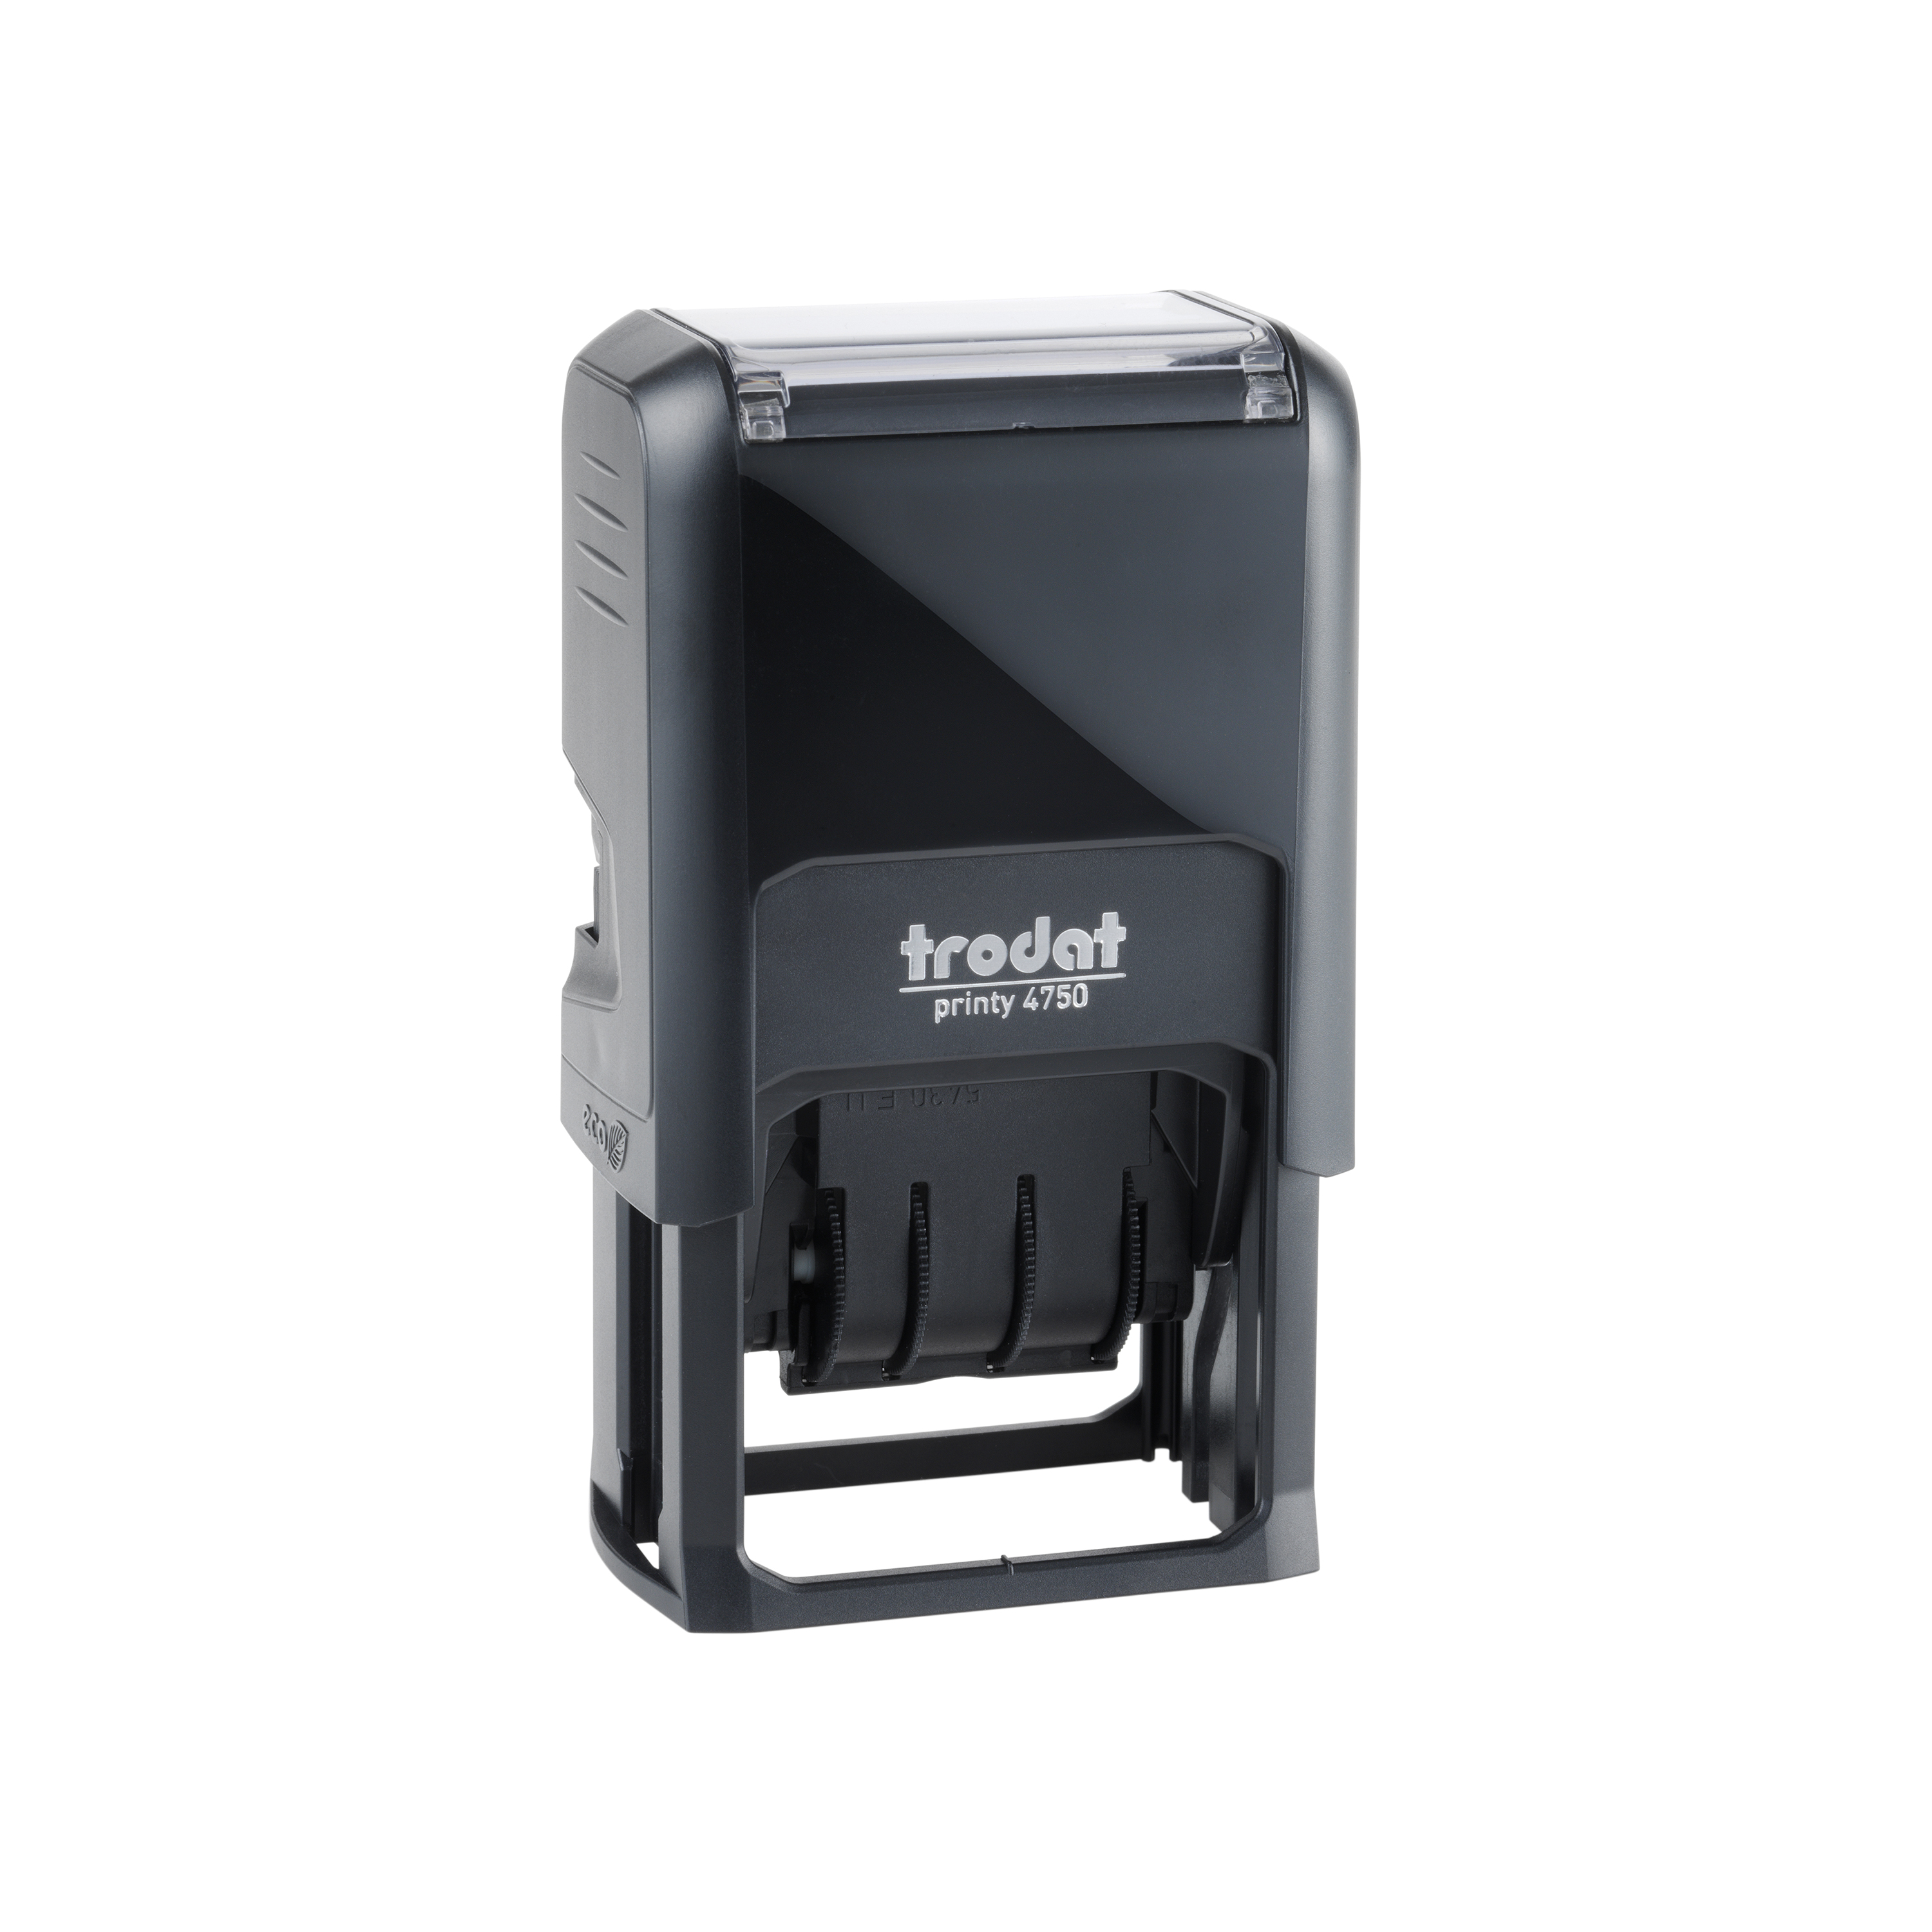 Trodat EcoPrinty 4750 Stamp Self-Inking Word and Date Stamp - Checked - 40x24mm Red and Blue Ref 141386